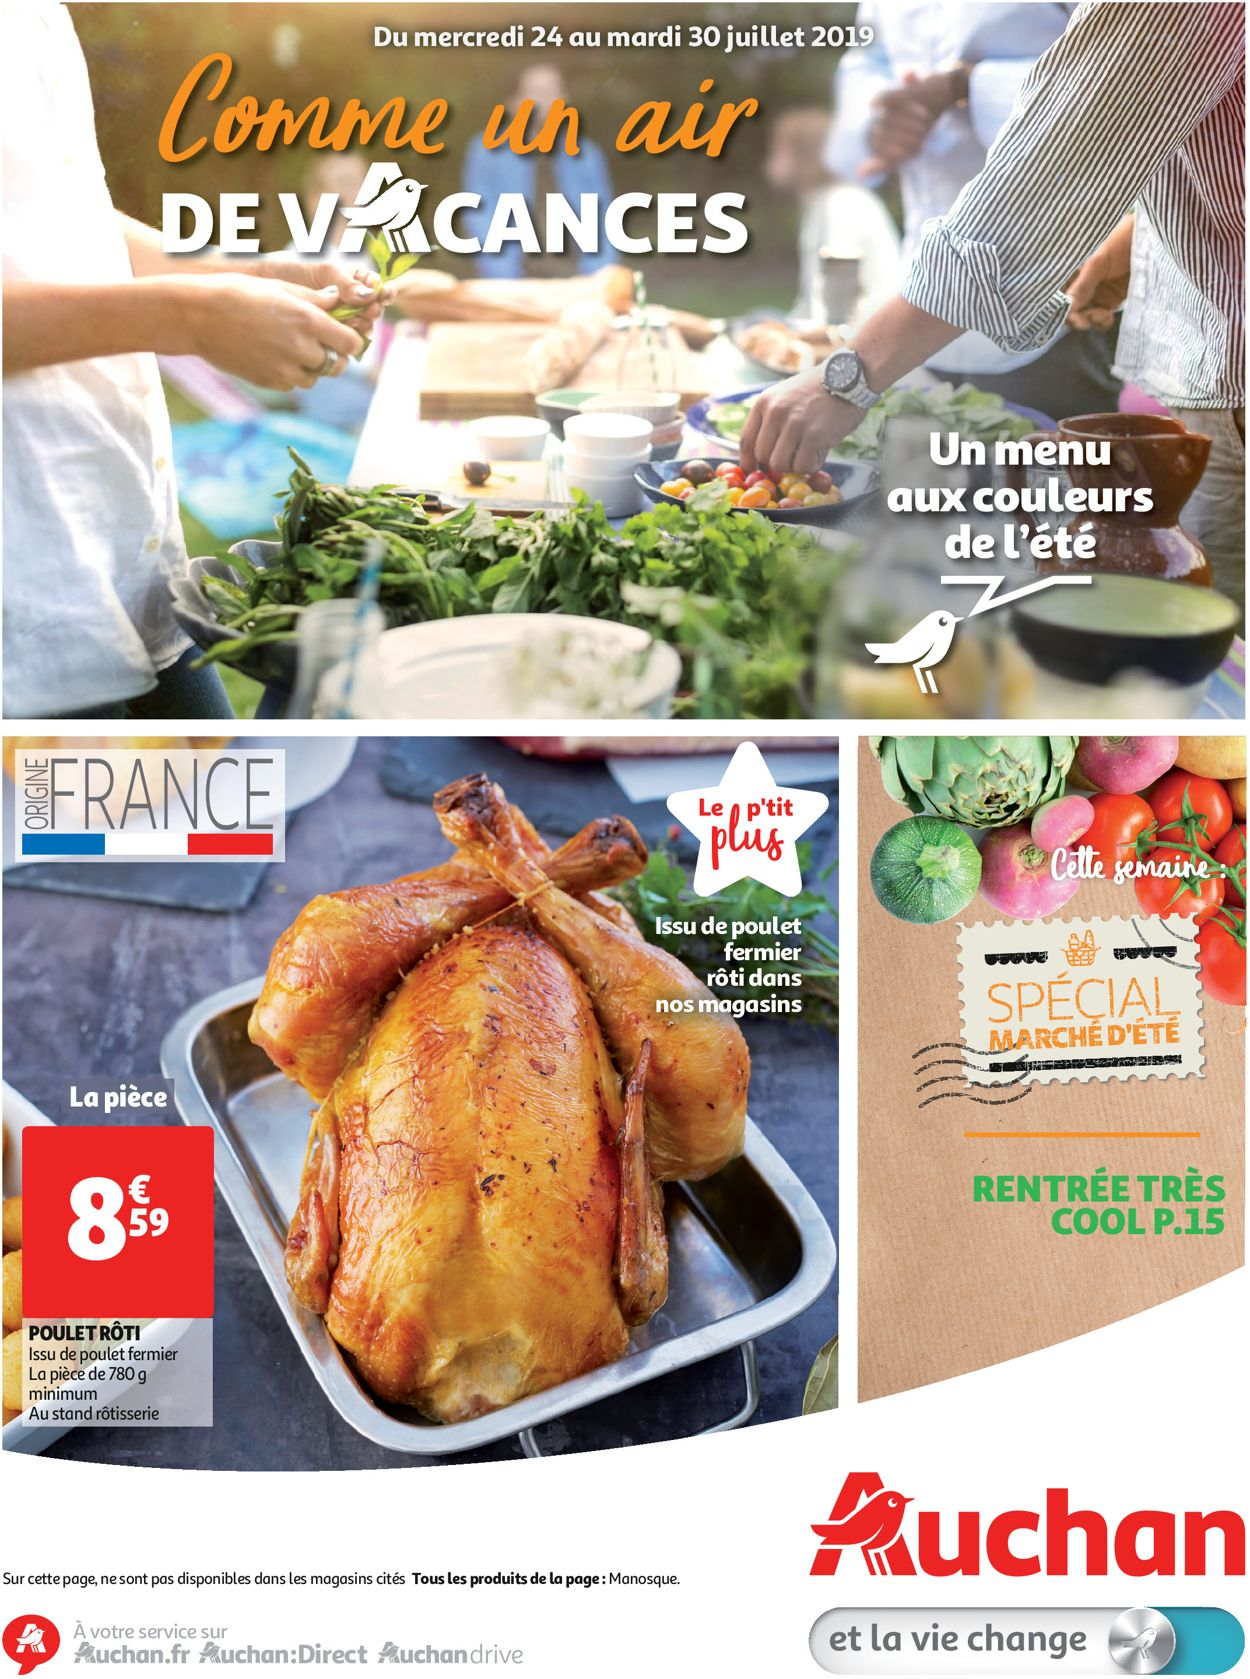 Auchan Catalogue - 24.07-30.07.2019